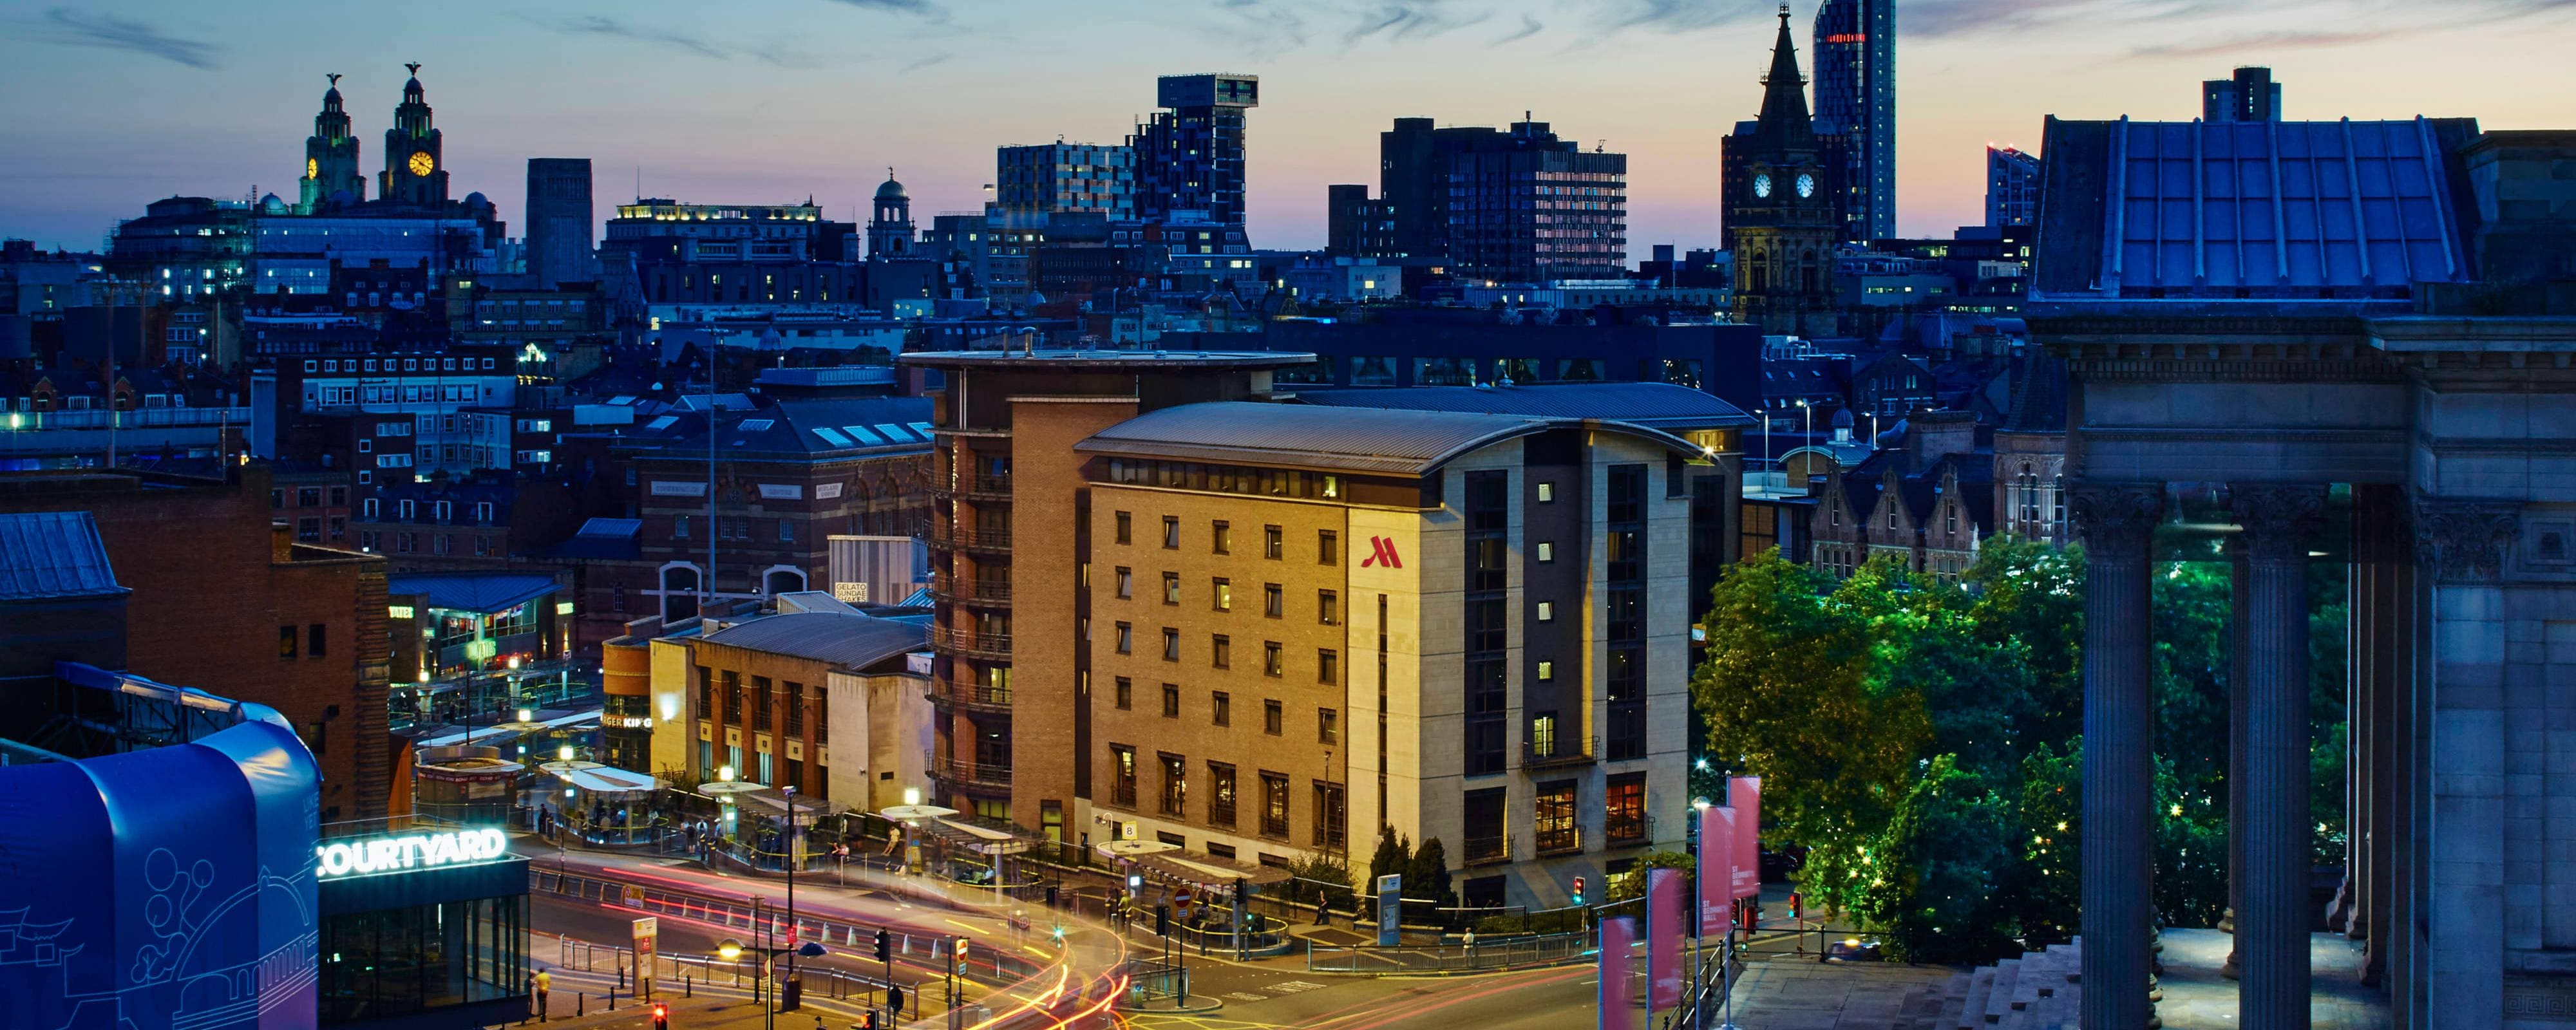 Hotels In Boston >> Hotel in Liverpool City Centre | Liverpool Marriott Hotel City Centre